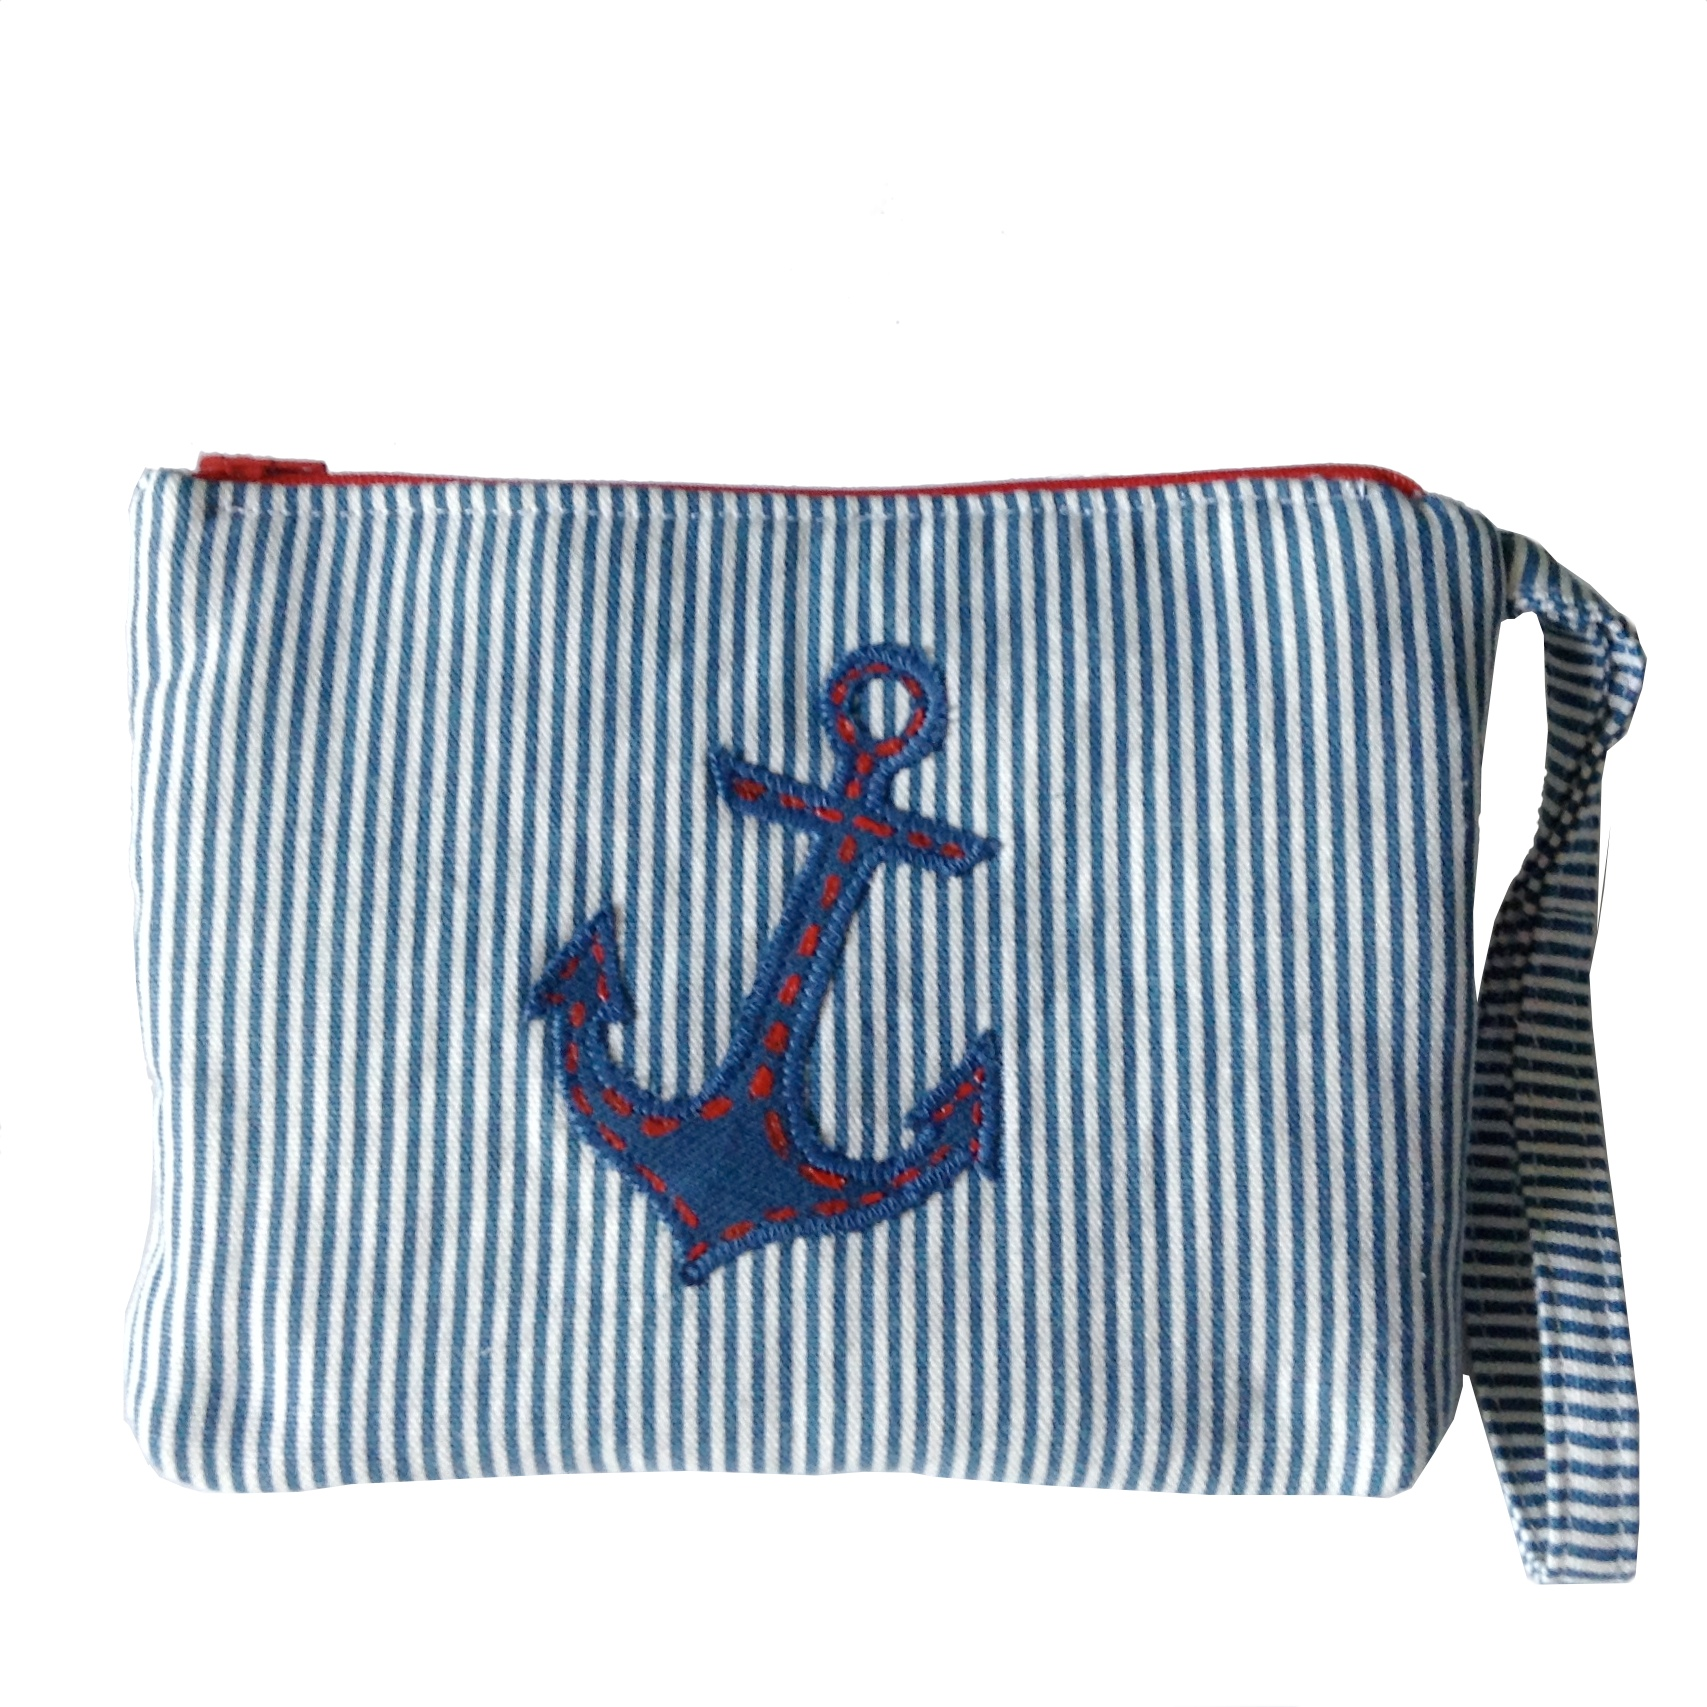 Wristlet Wallet - Nautical by Lady Lindy Handmades